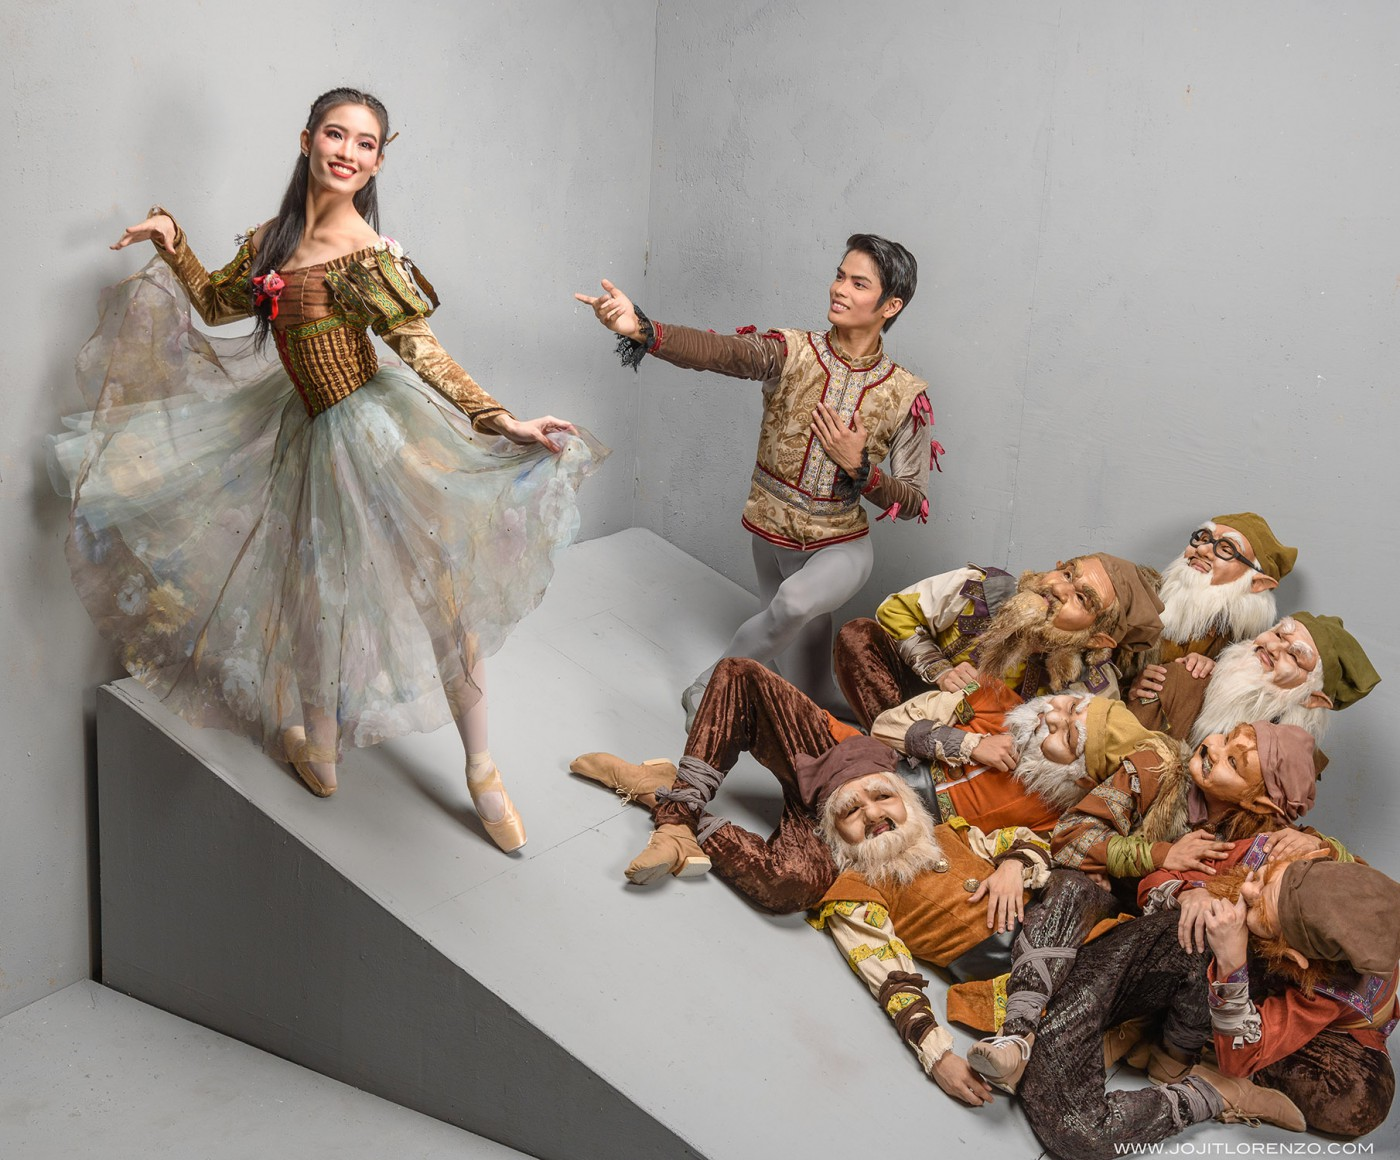 Principal dancers Joan Emery Sia and Elpidio Magat, seen here with the Seven Dwarfs, lead the cast of Lisa Macuja-Elizalde's  Snow White  which will open Ballet Manila's 24th season in September.